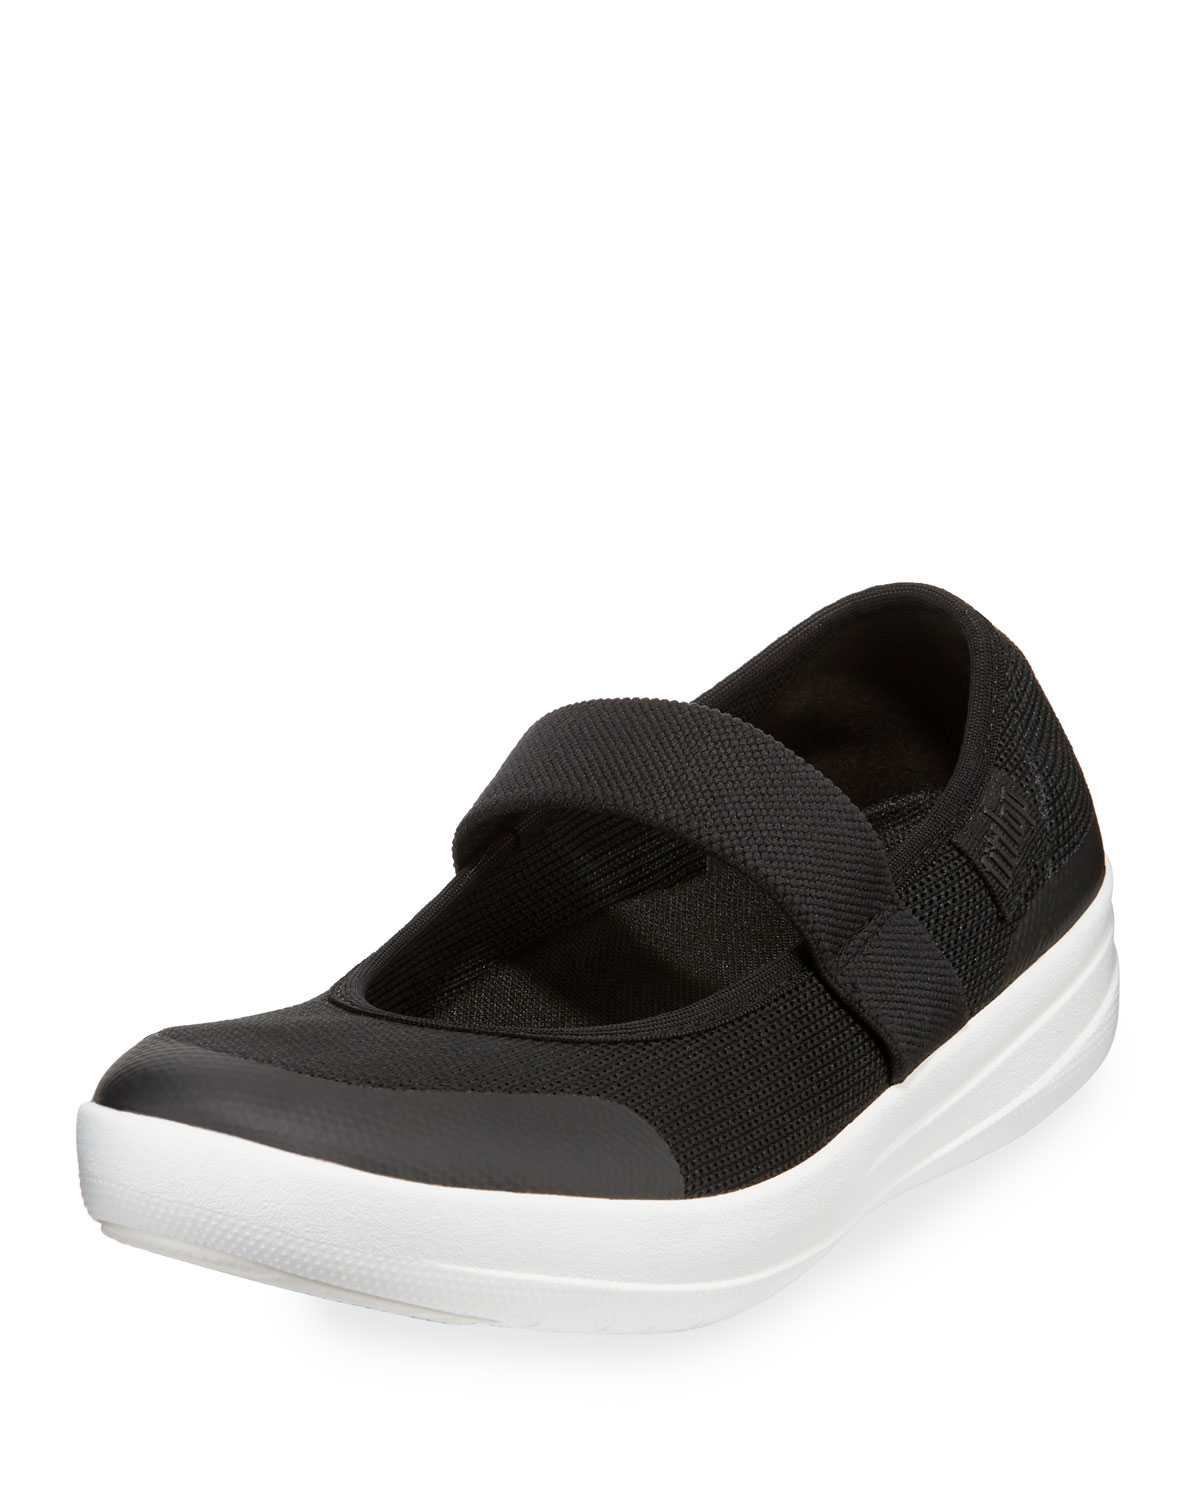 2526f39c184311 Fitflop Uberknit Mary Jane Sneakers In Black